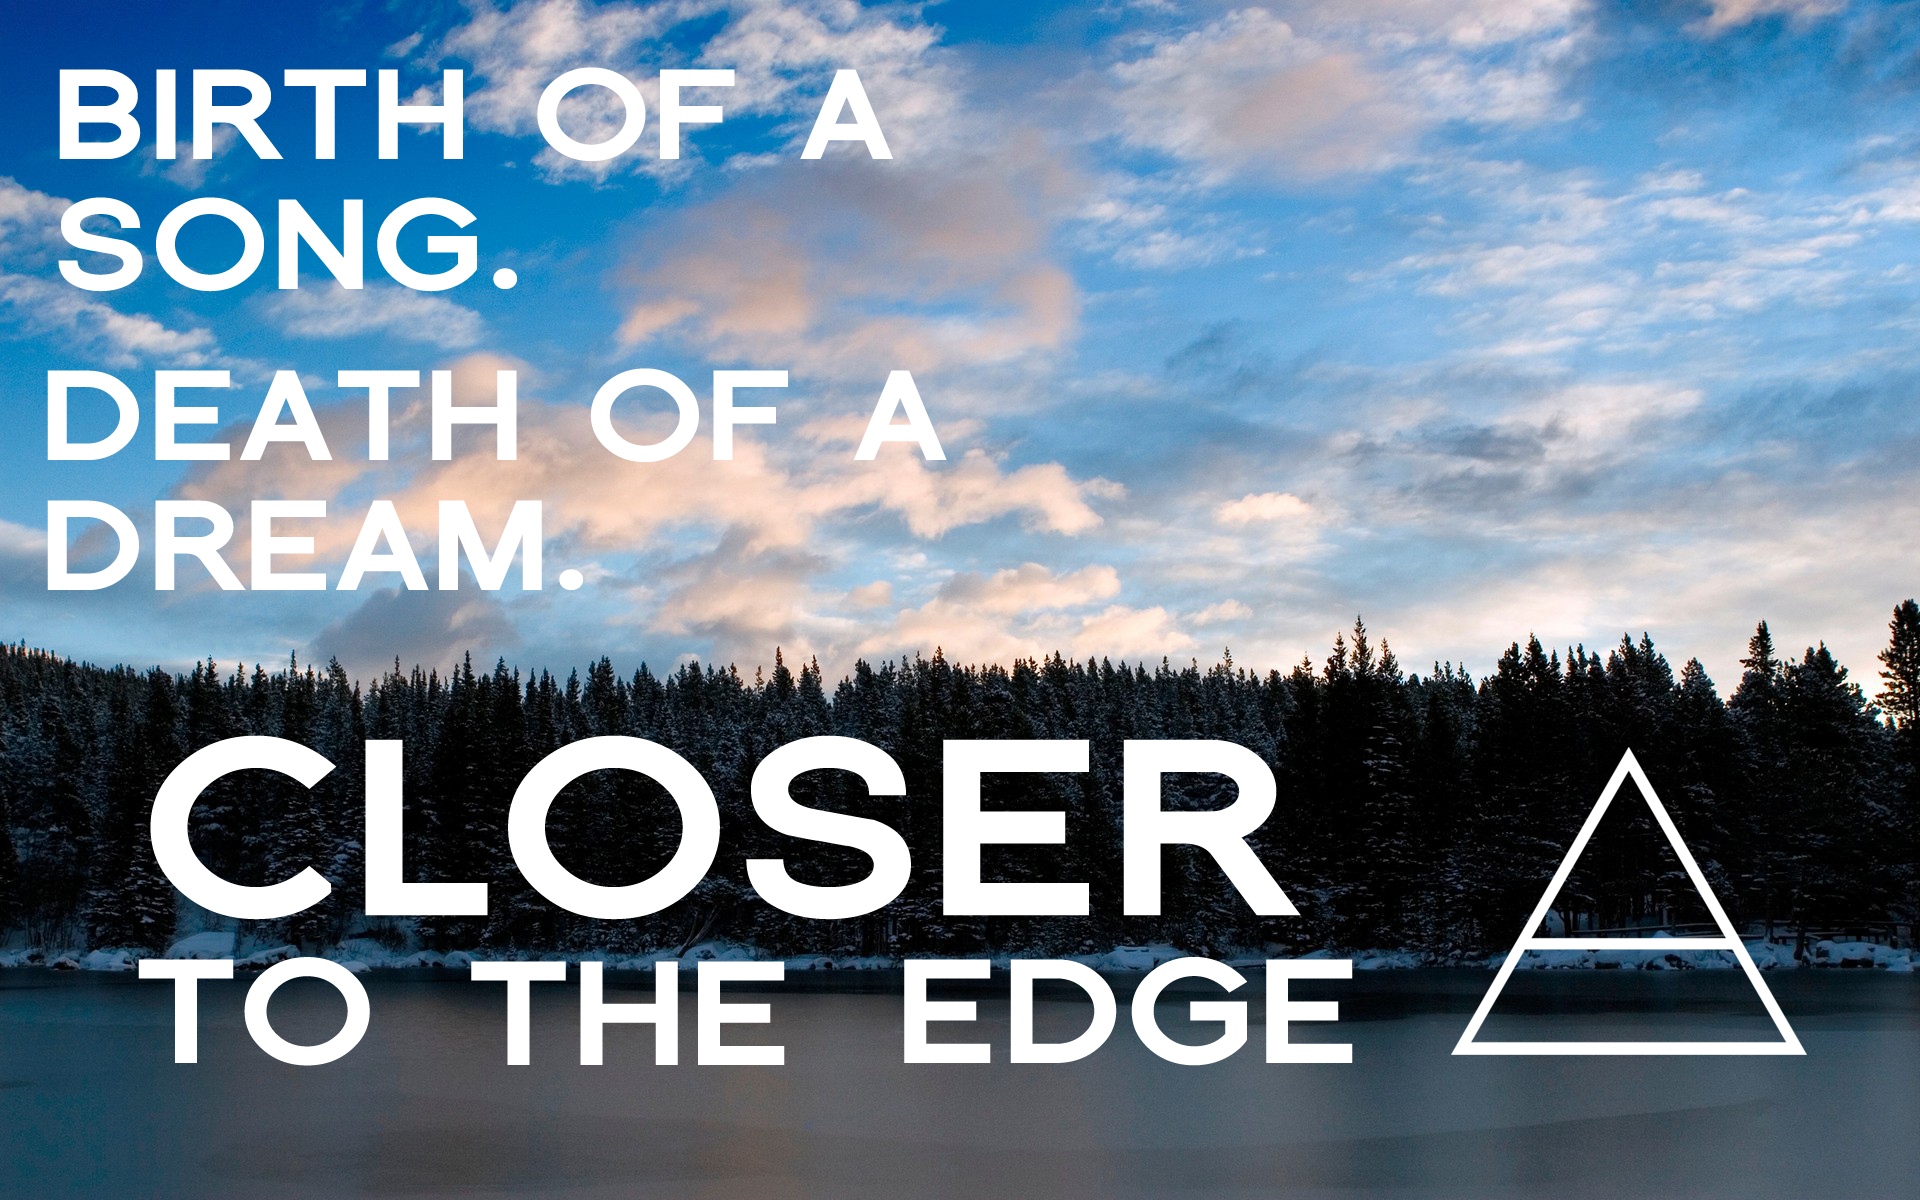 CLOSER TO THE EDGE 壁纸